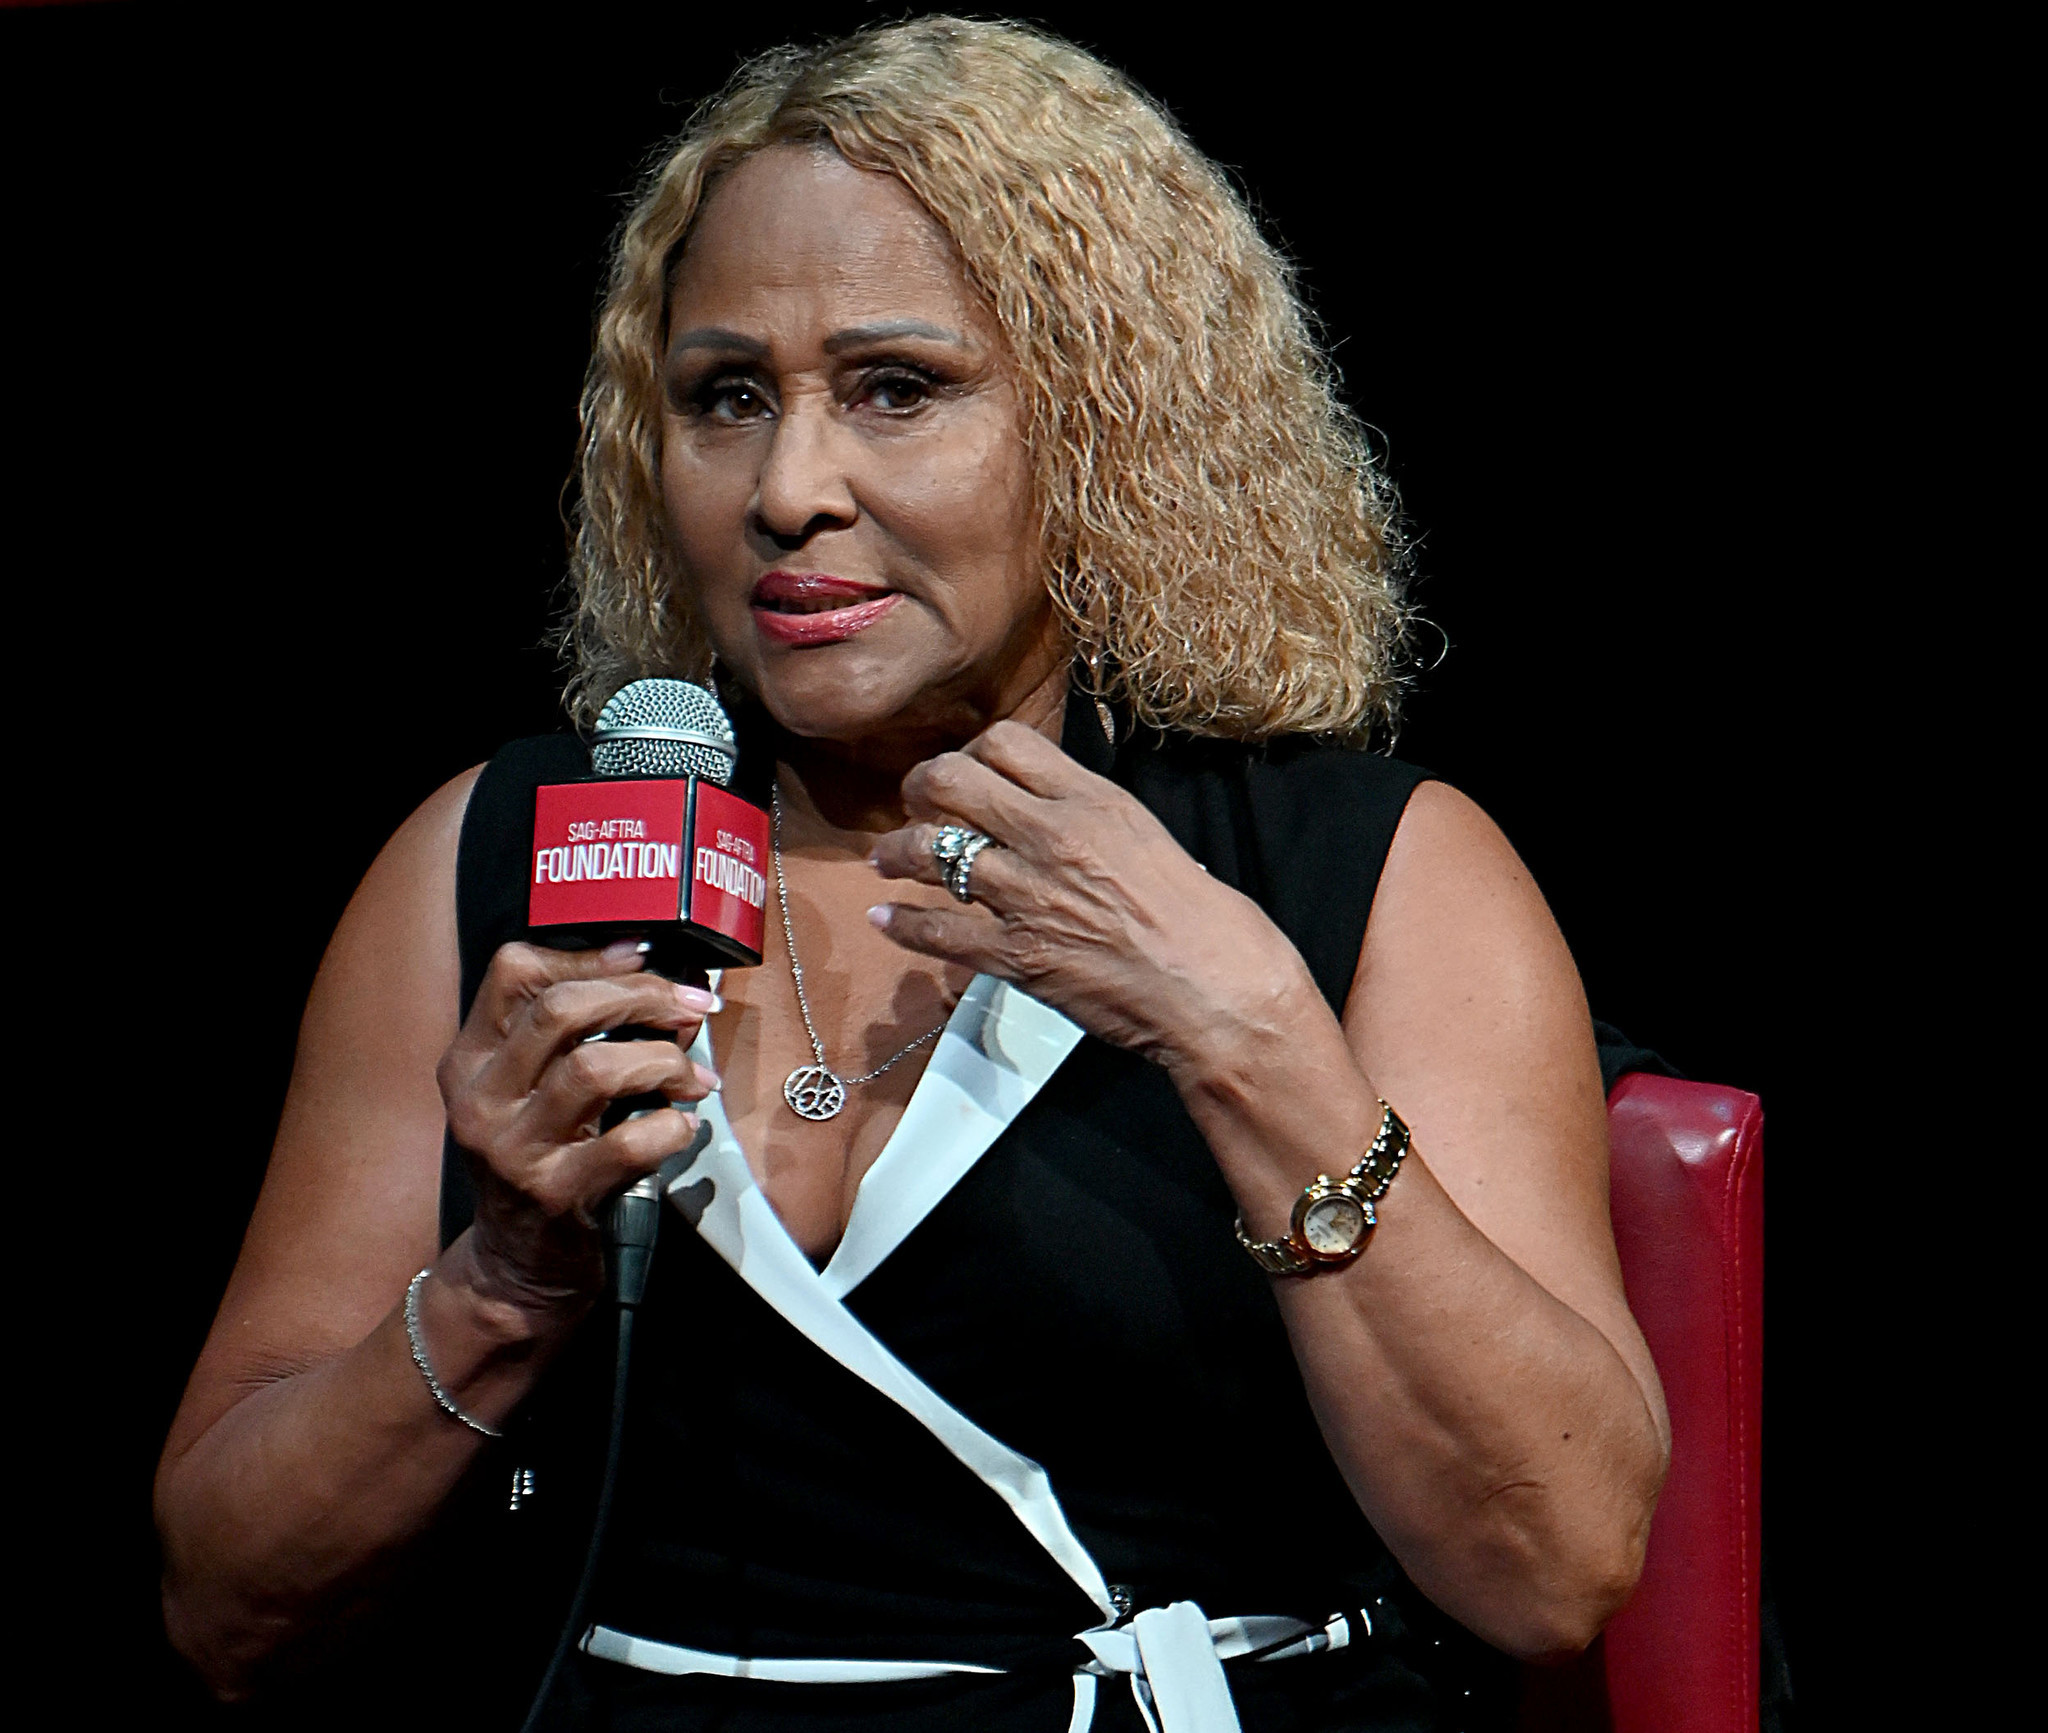 Singer Darlene Love slams producers for booking younger musicians to cover her classic song 'Christmas (Baby, Please Come Home)'